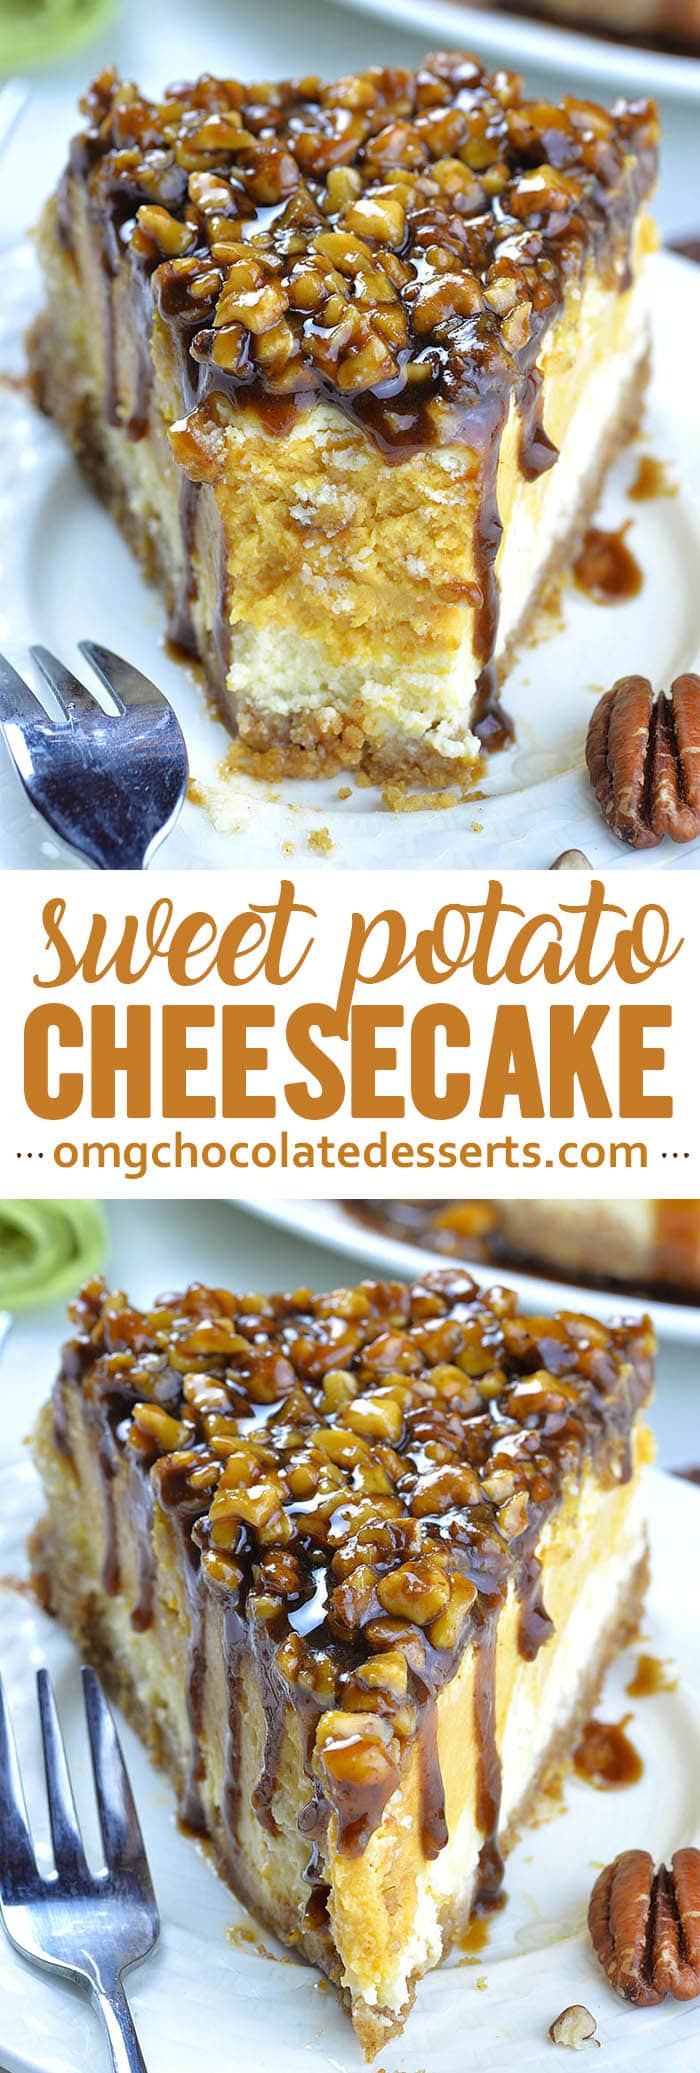 Sweet Potato Cheesecake with Pecan Topping is delicious dessert for holiday season, especially Thanksgiving and Christmas! Sweet potato pie, pecan pie and cheesecakeare traditional desserts, often served during the holidays.